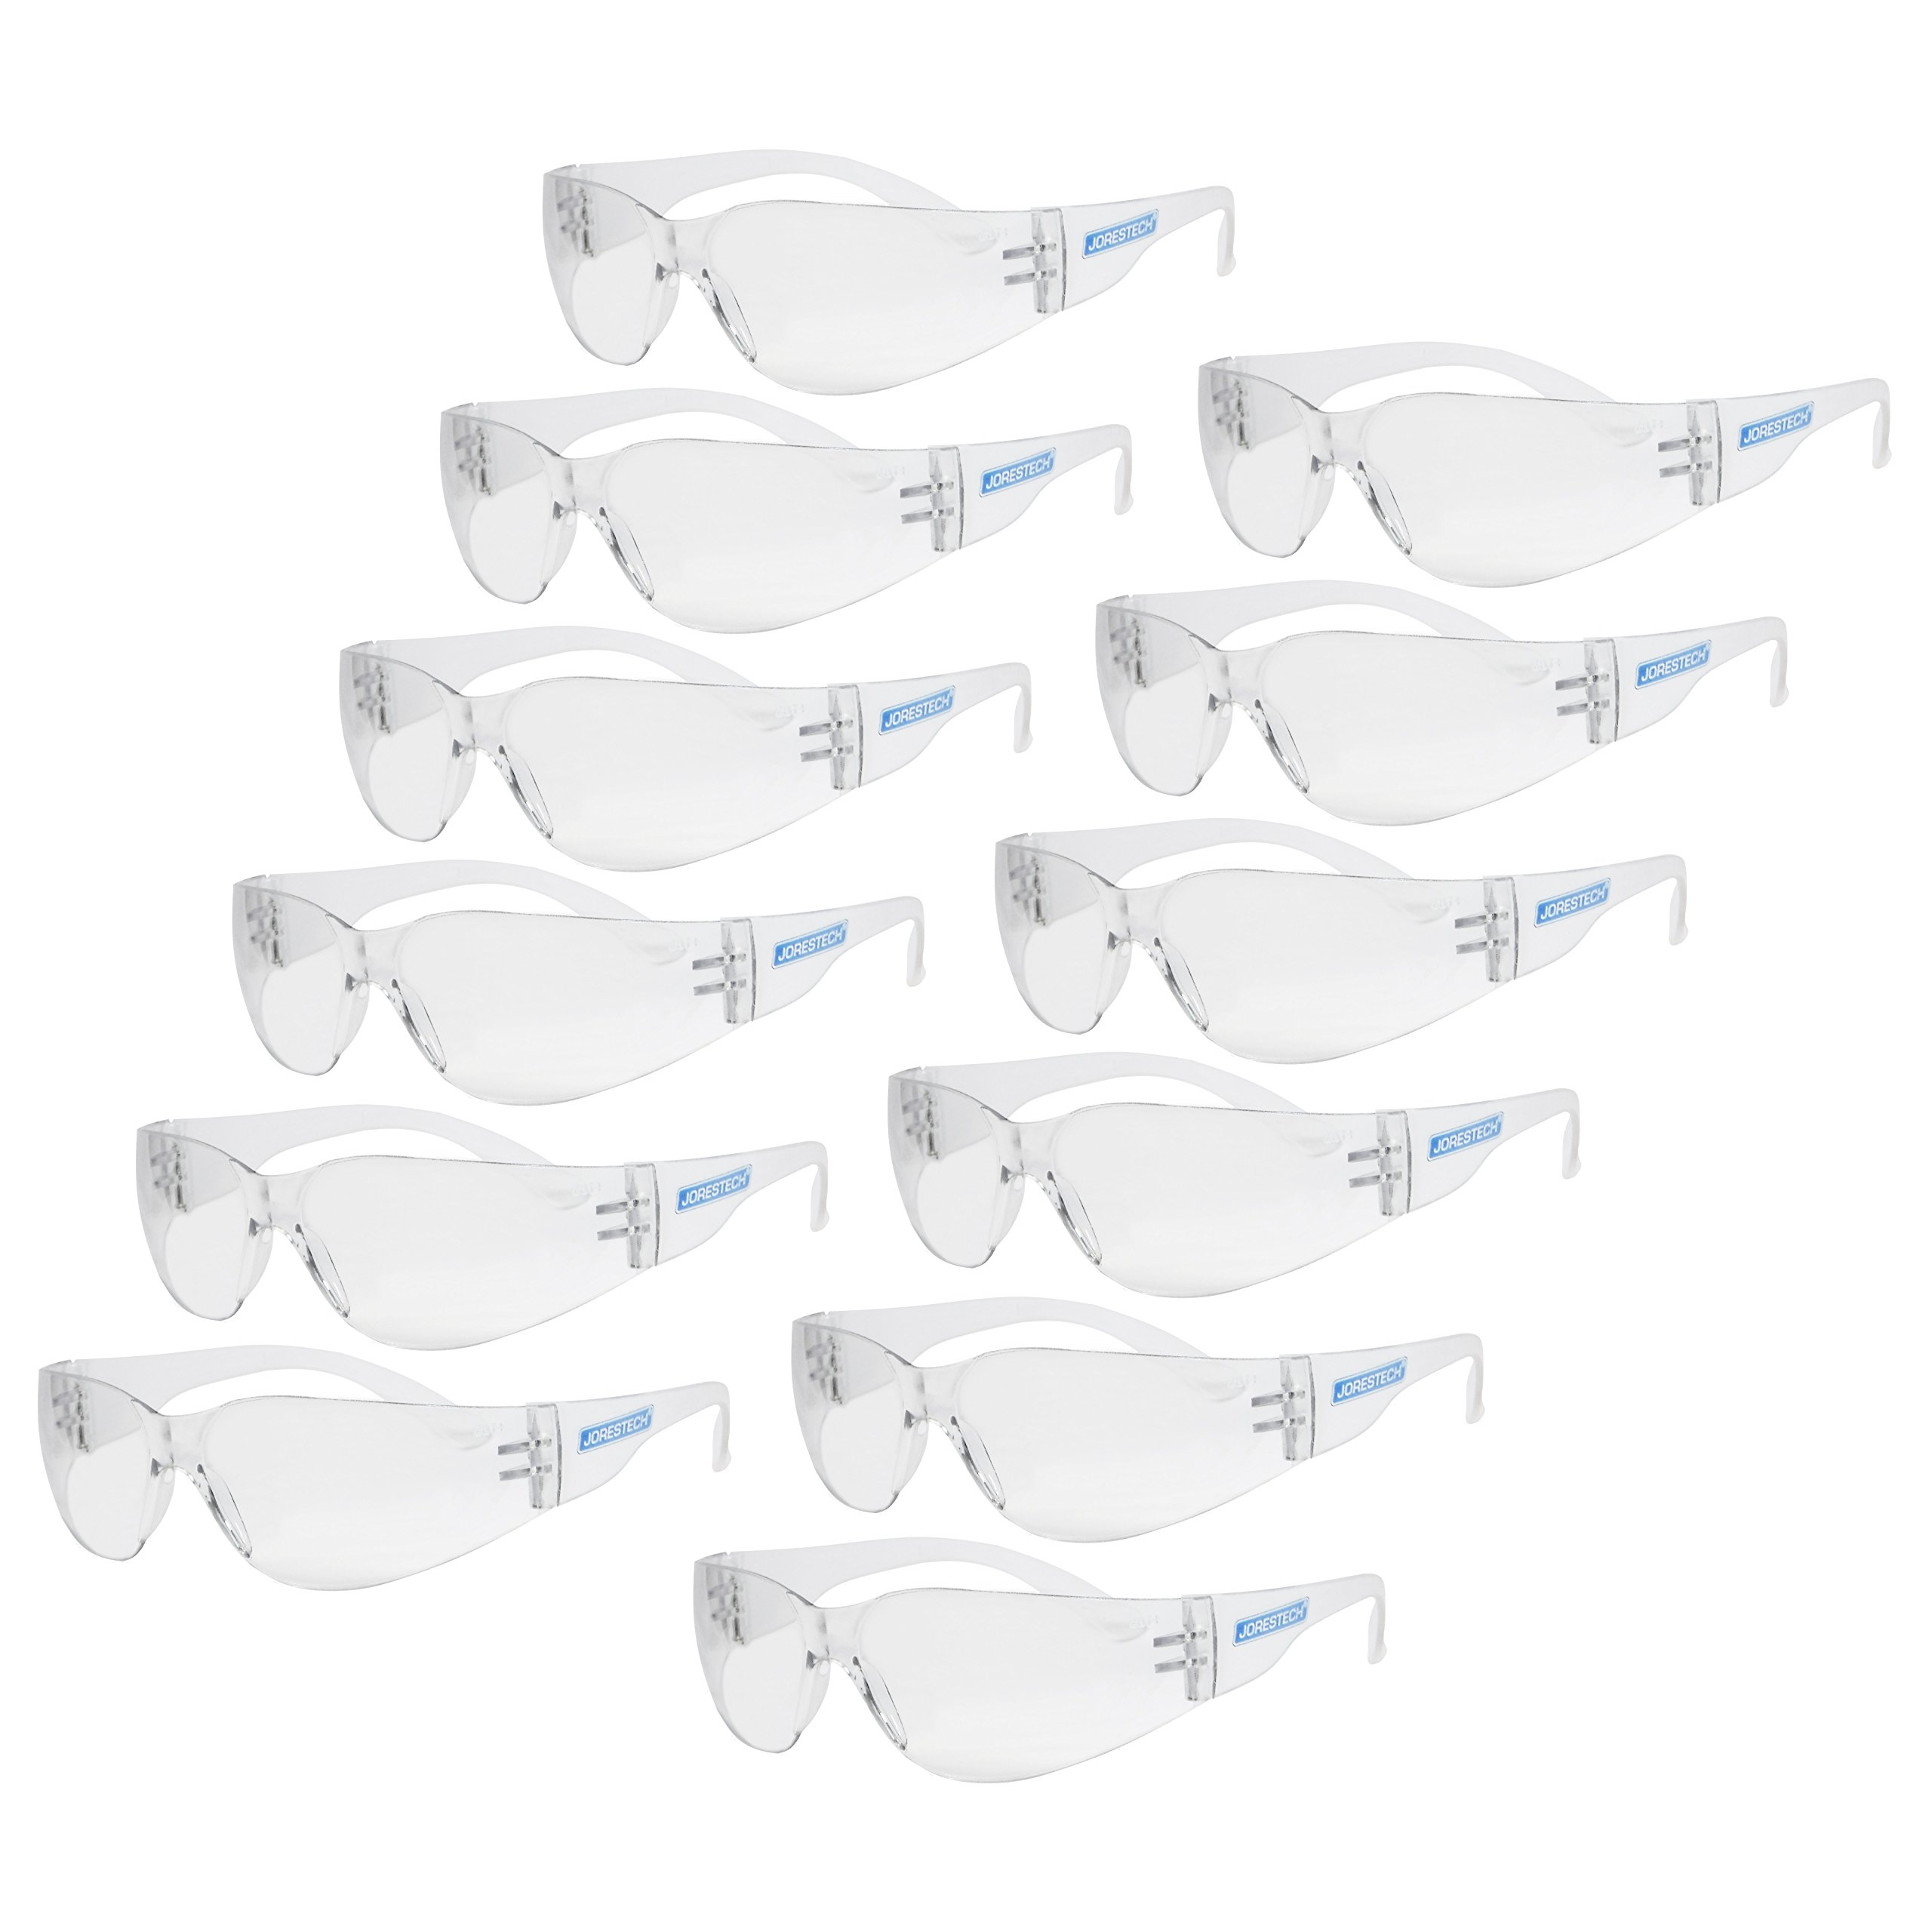 JORESTECH Eyewear Protective Safety Glasses, Polycarbonate Impact Resistant Lens Pack of 12 (Clear) by JORESTECH